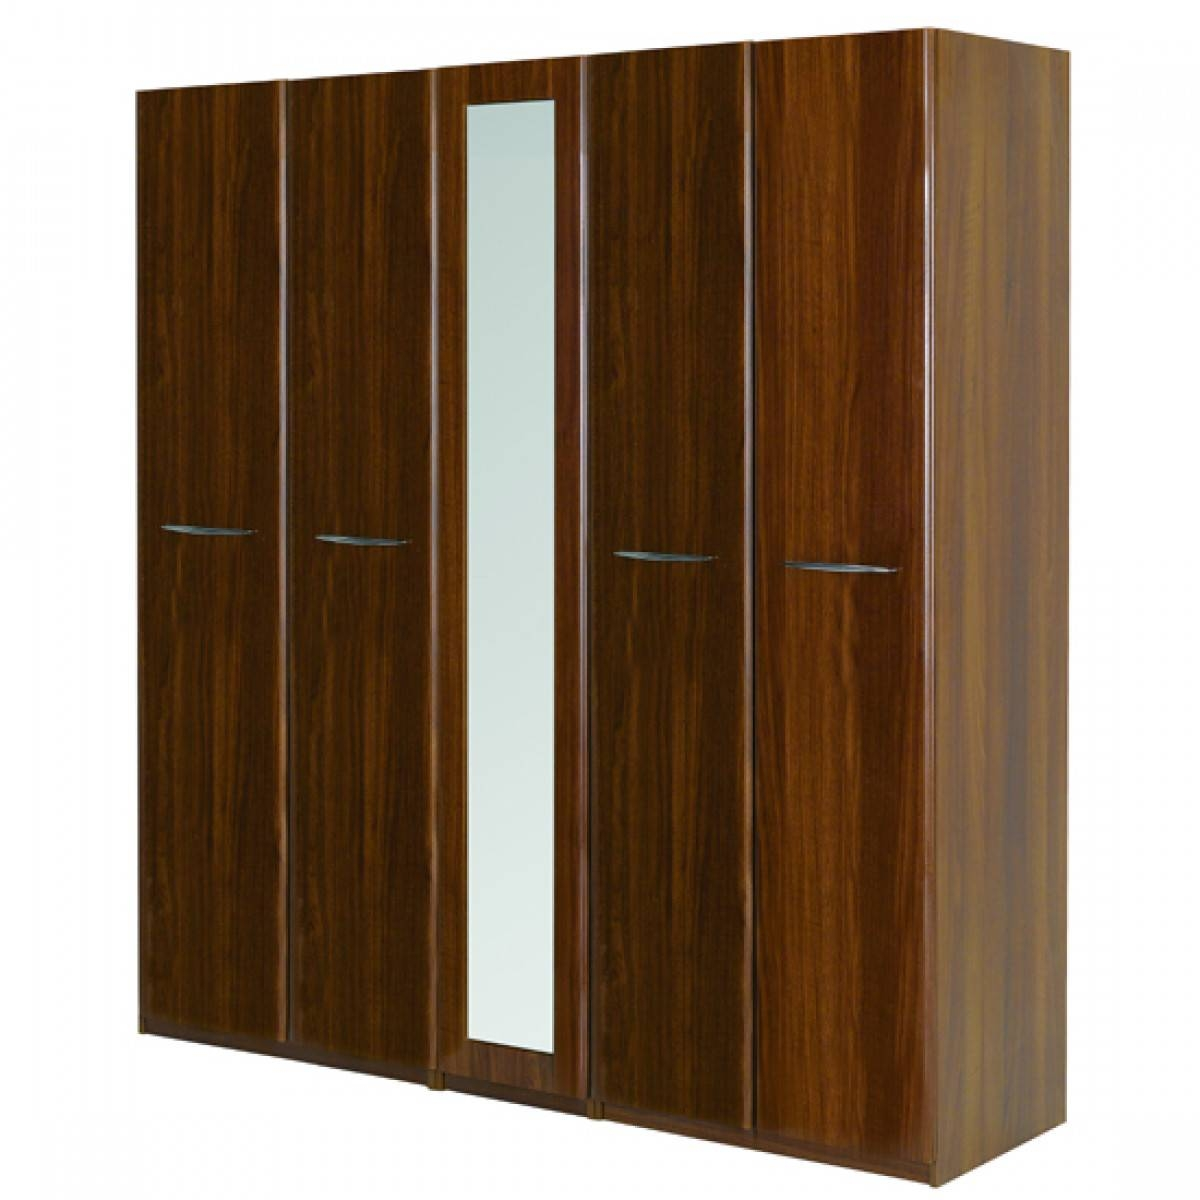 Nonso Triple(3)-Door Wardrobe + Drawers In Maple Wood Finish in 5 Door Mirrored Wardrobes (Image 13 of 15)